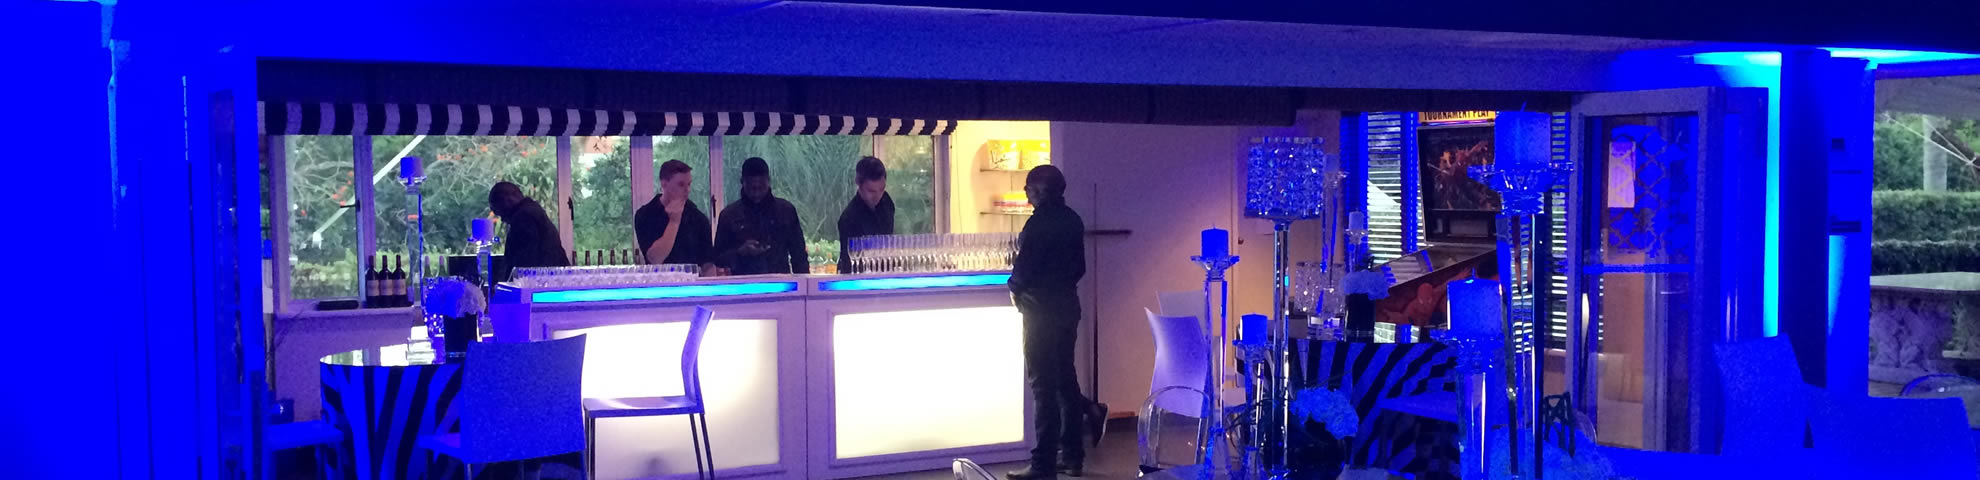 Mobile bar services in Gauteng - Drake Events.